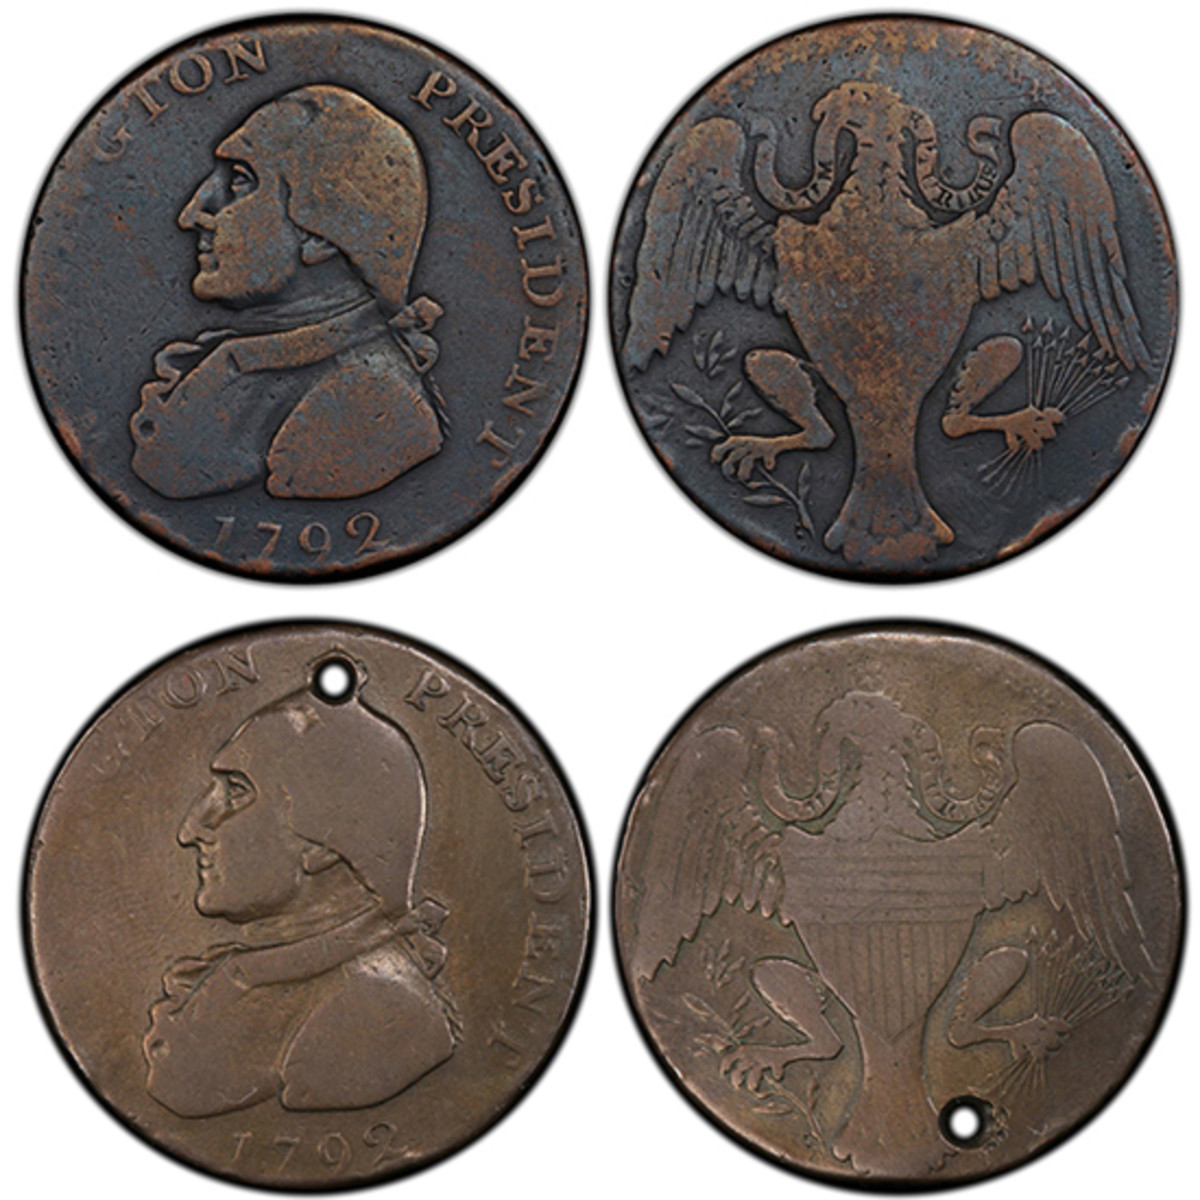 Detective work by PCGS showed that the coin at top was actually a doctored coin that had started out looking like the piece at the bottom.